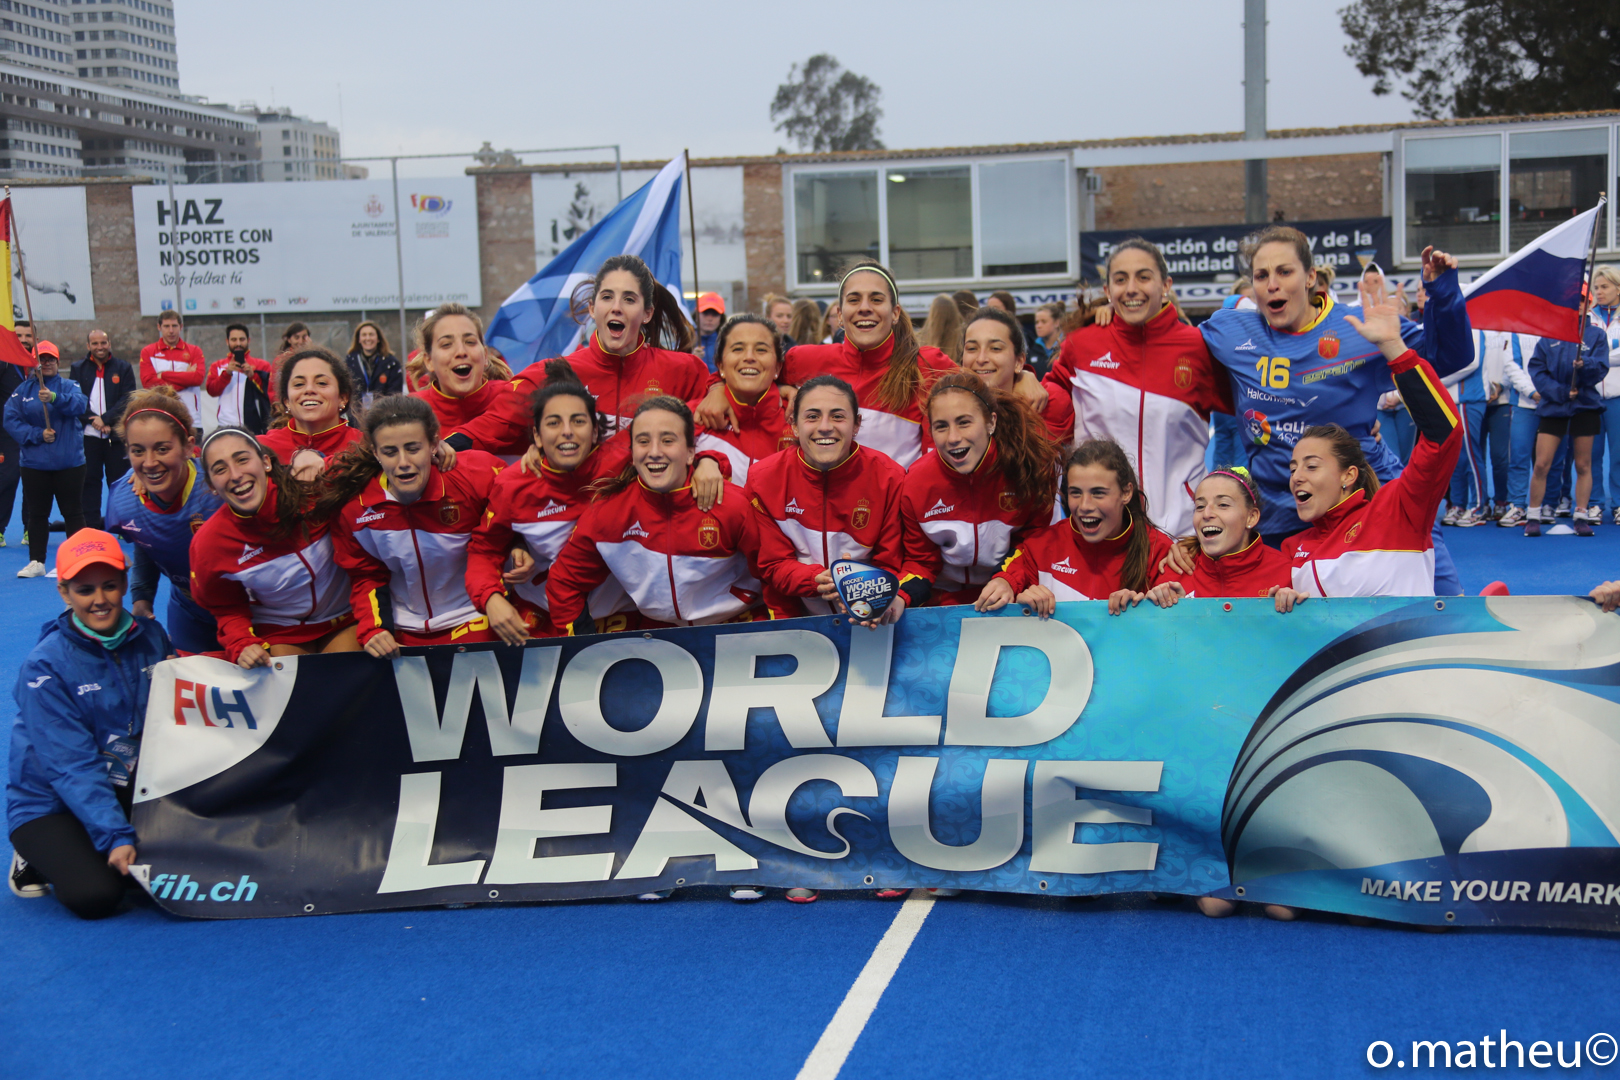 Las Redsticks, campeonas de la Valencia Hockey World League